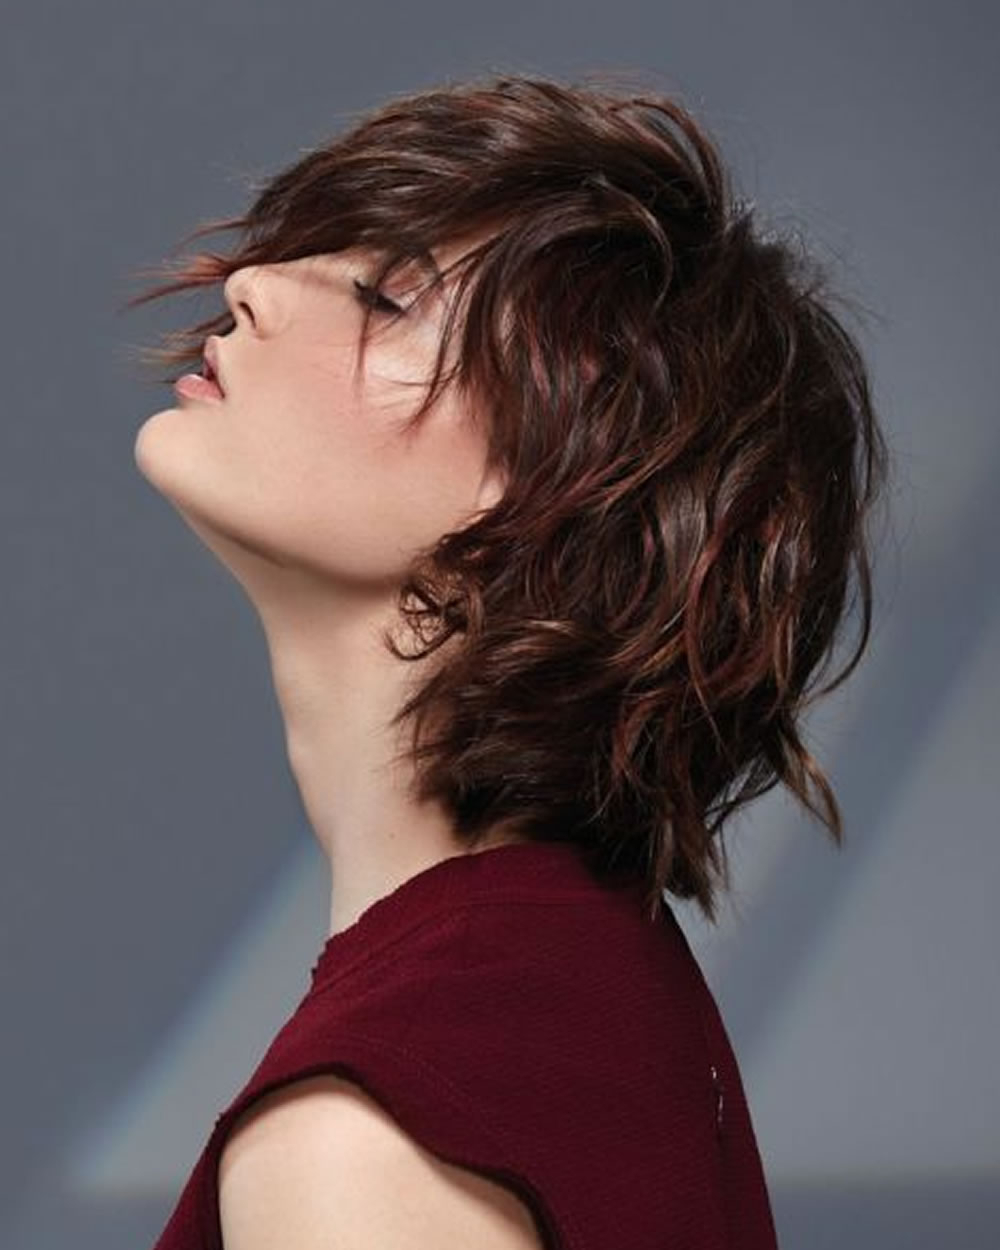 Hair Cuts : Bob Haircuts For Round Faces And Fine Hair Thick Female Within Womens Short Haircuts For Round Faces (View 16 of 25)